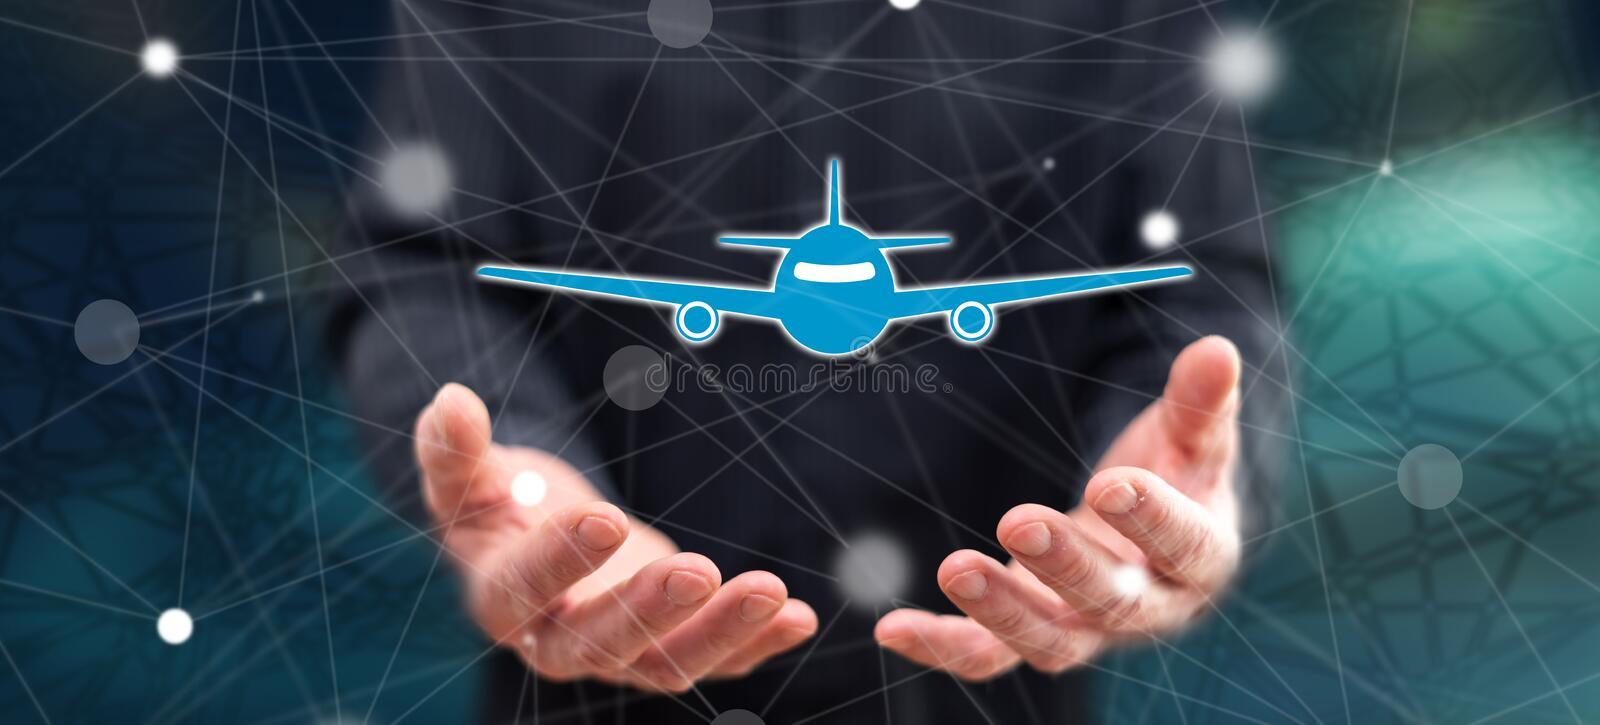 Concept of air transport. Air transport concept above the hands of a man in background royalty free stock image